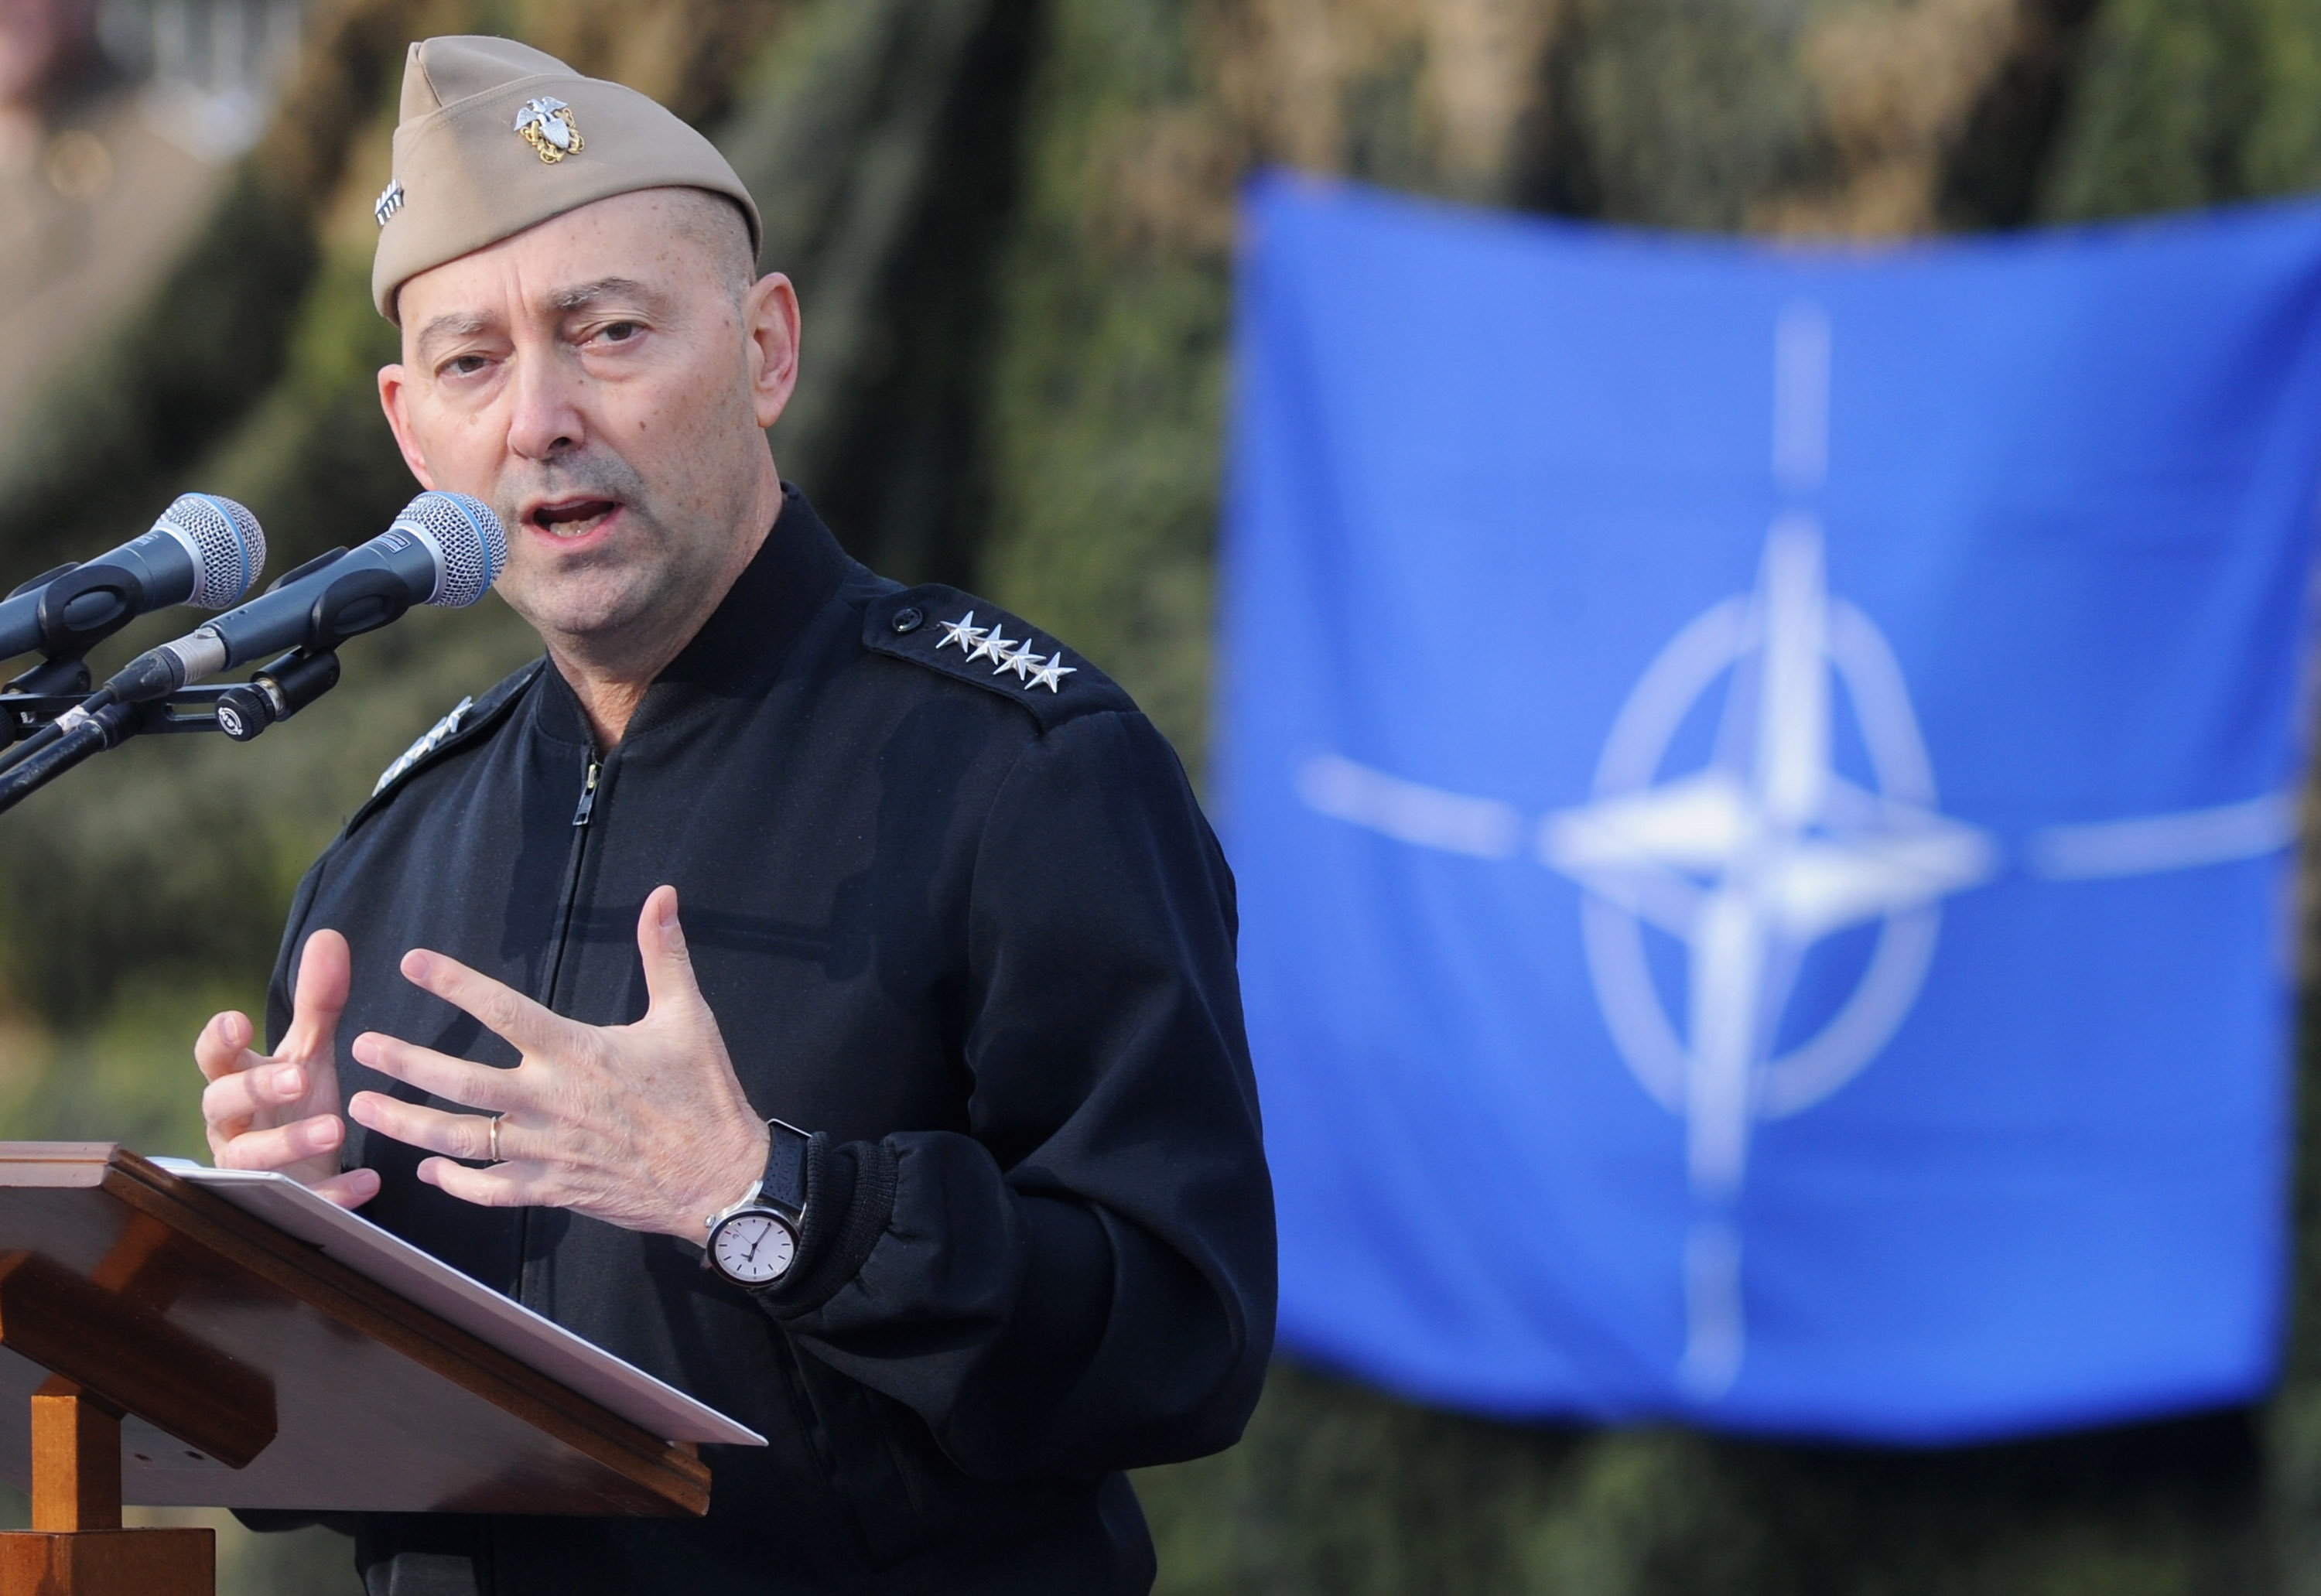 Supreme Allied Commander Europe (SACEUR) Admiral James Stavridis makes a speech at the departure ceremony for OTAN Rapid Deployable Corps - Italy bound for Afghanistan at Ugo Mara Barracks in Solbiate Olona, Italy, on Jan. 10, 2013.